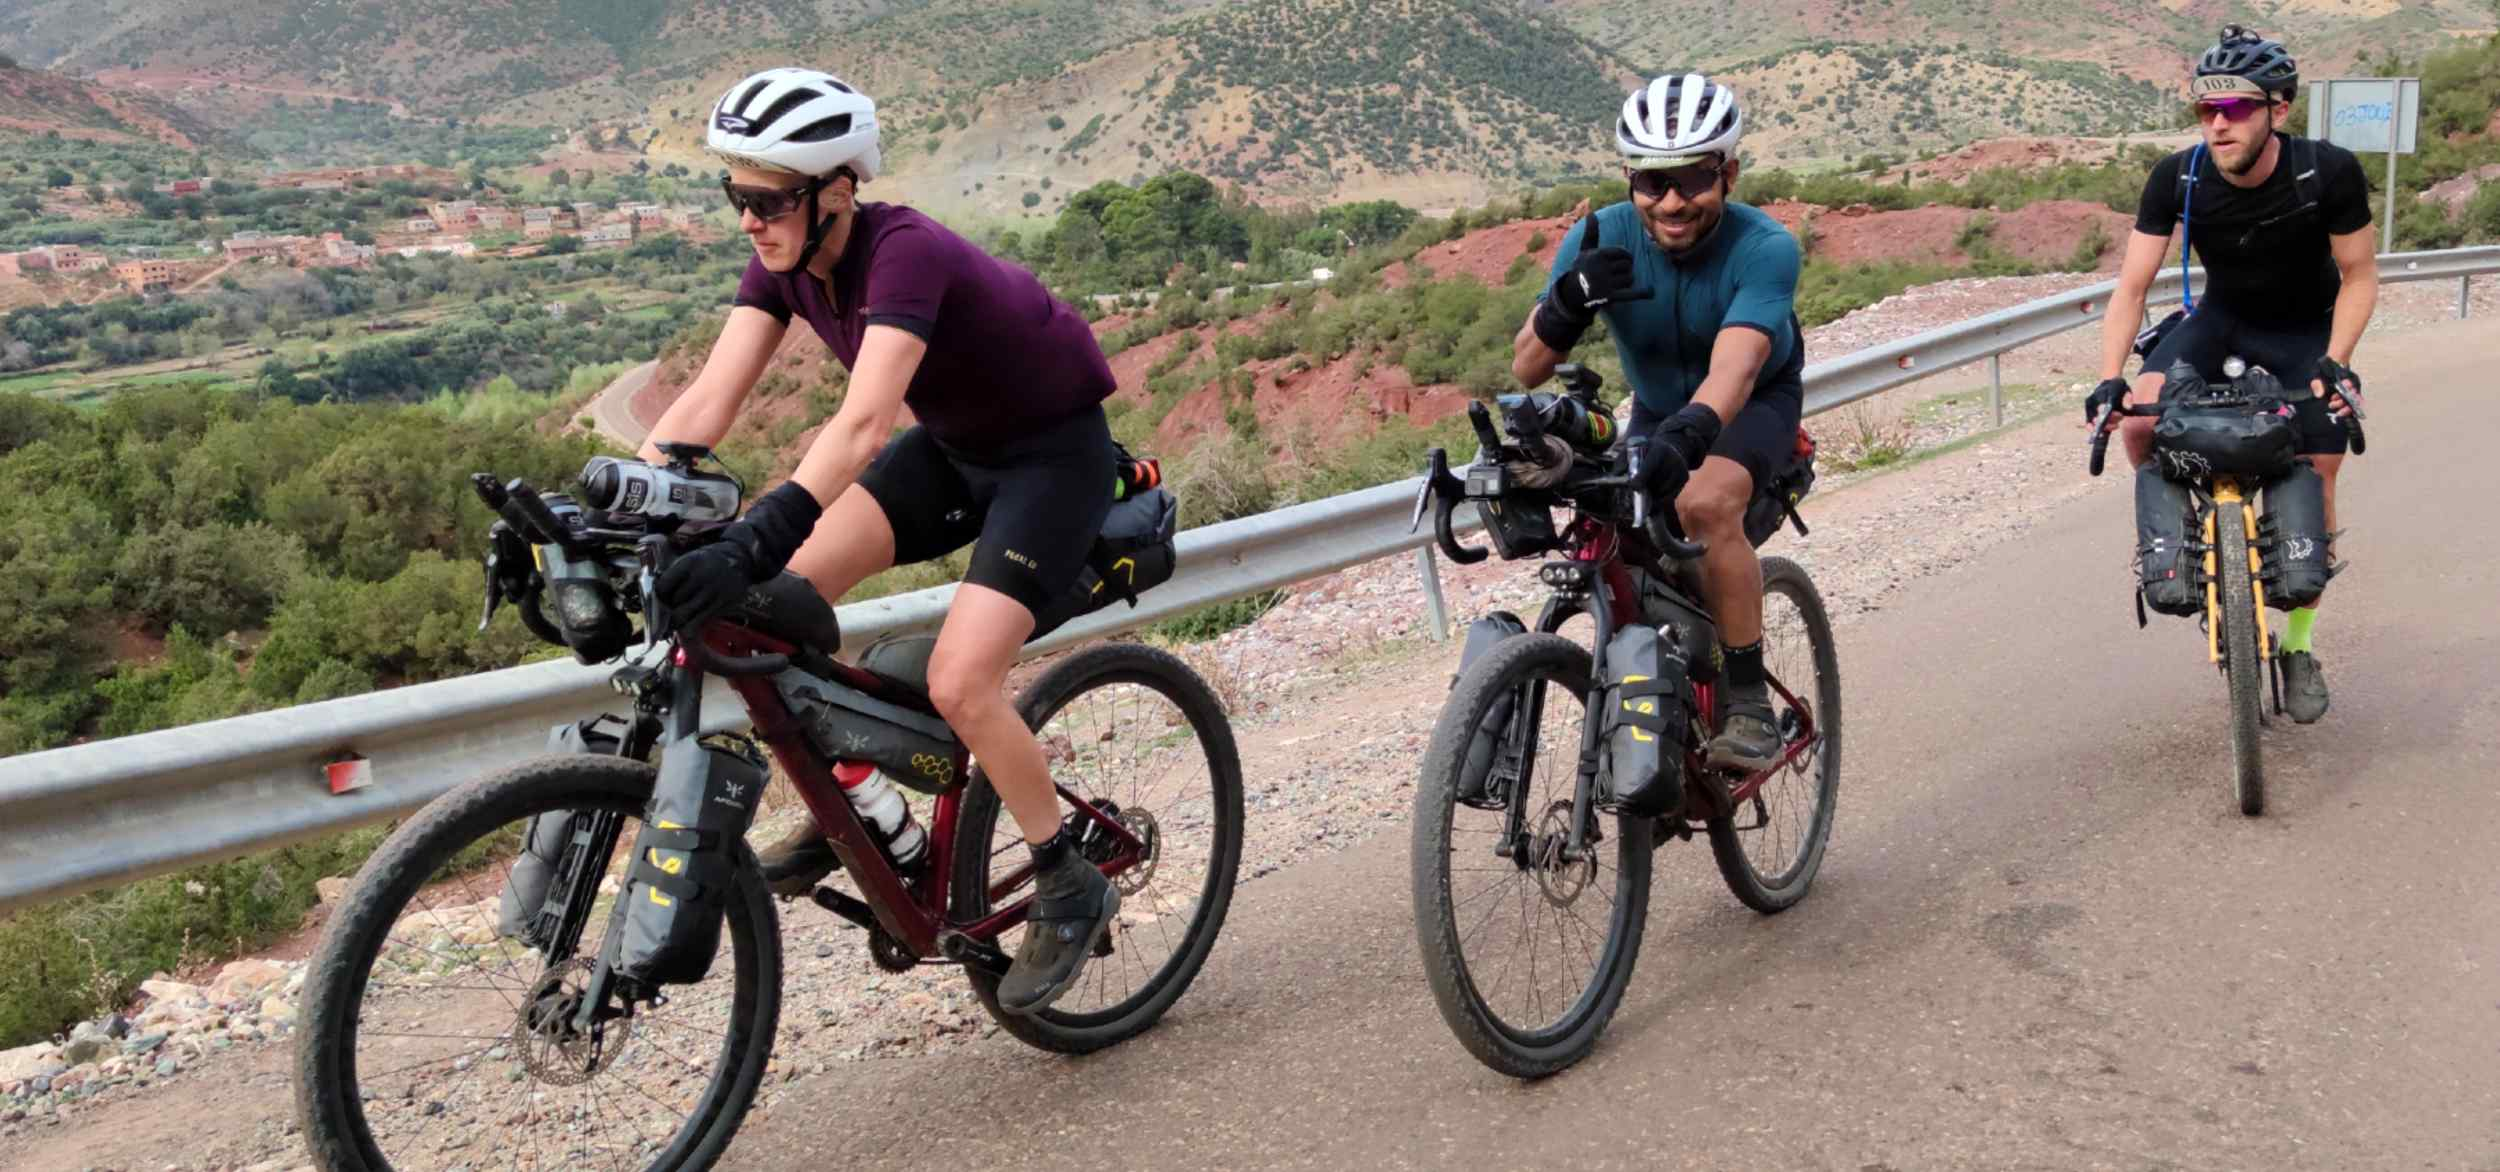 Three bikepackers riding their bikes on the road in the mountains